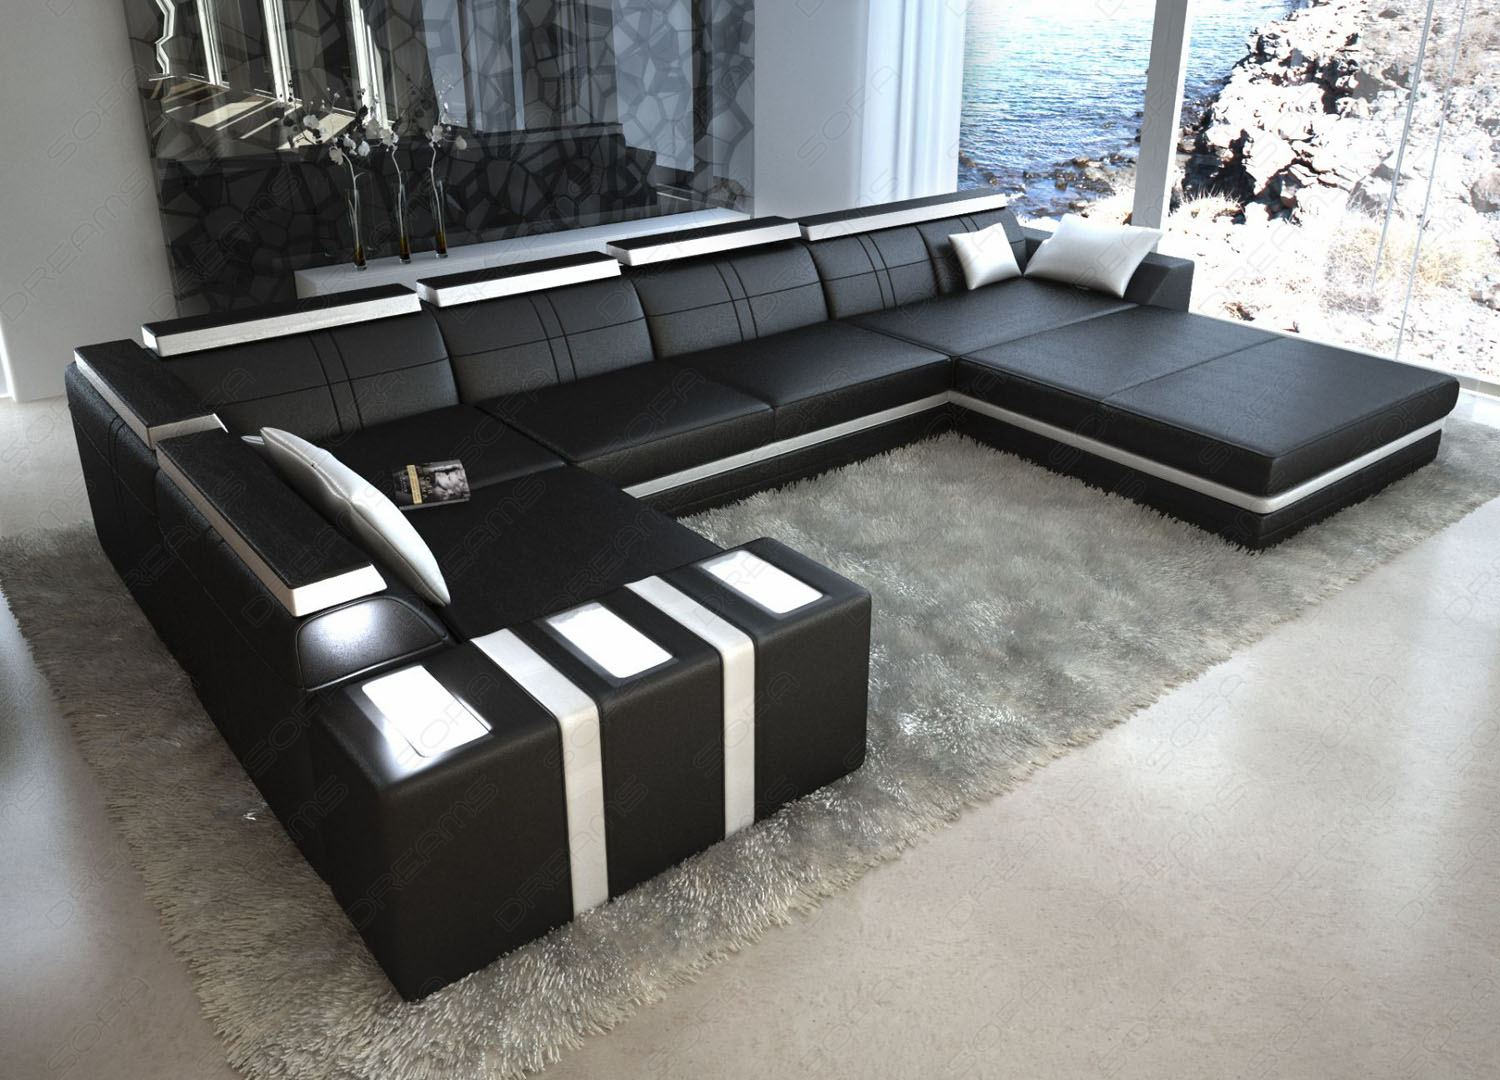 couch u form simple sofa u form m styling mit kleine. Black Bedroom Furniture Sets. Home Design Ideas